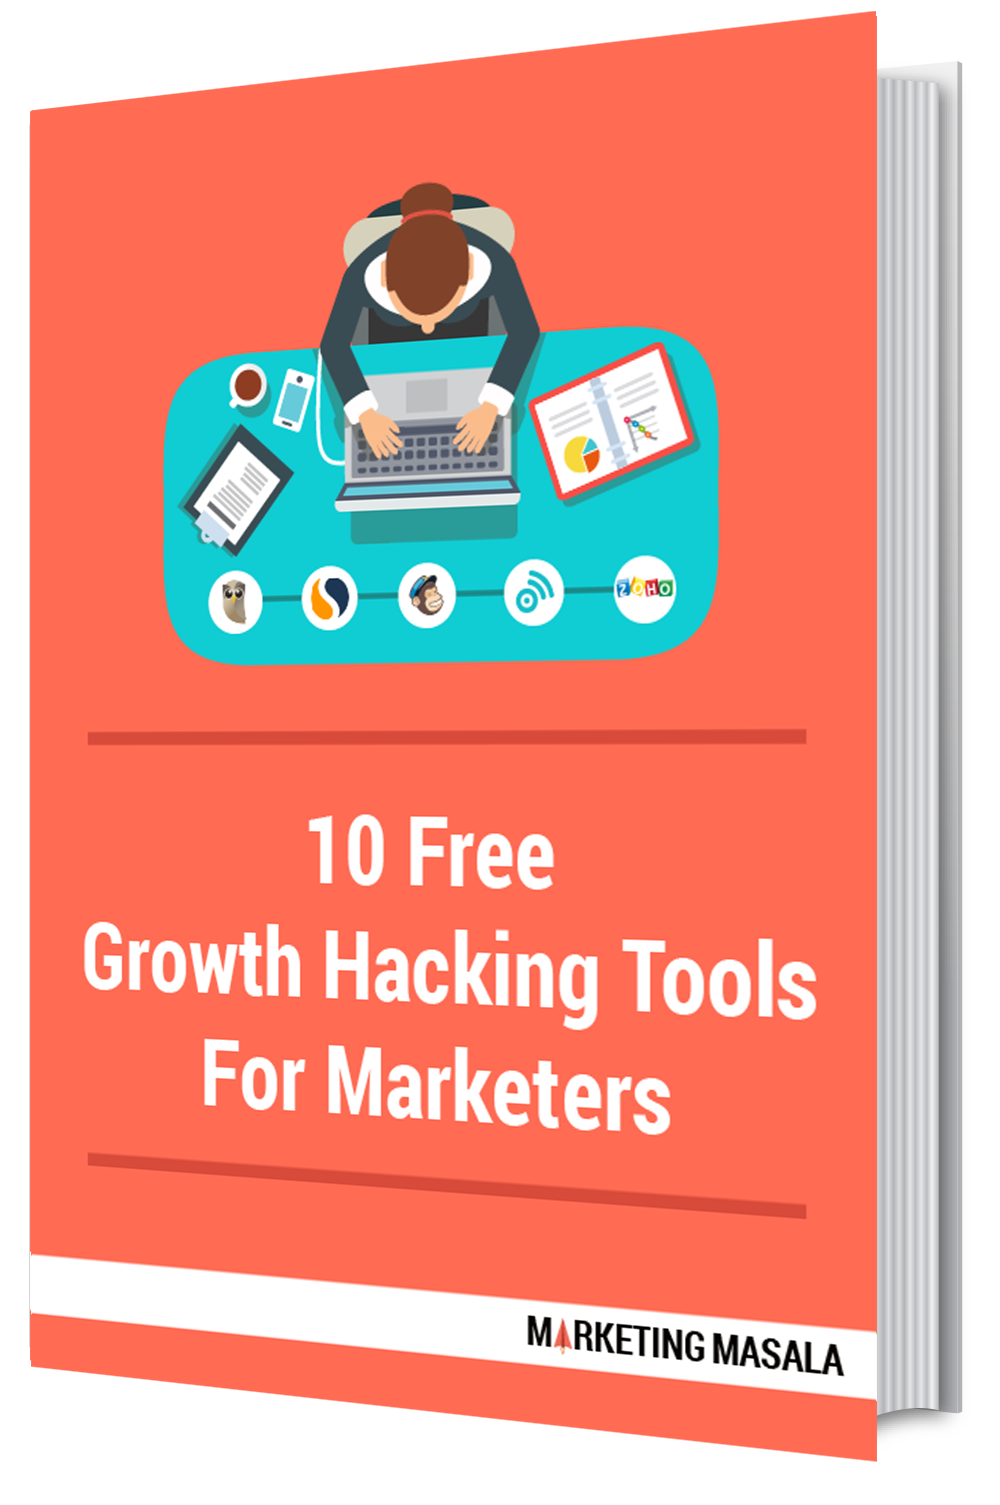 10-free-growth-hacking-tools-coverbook